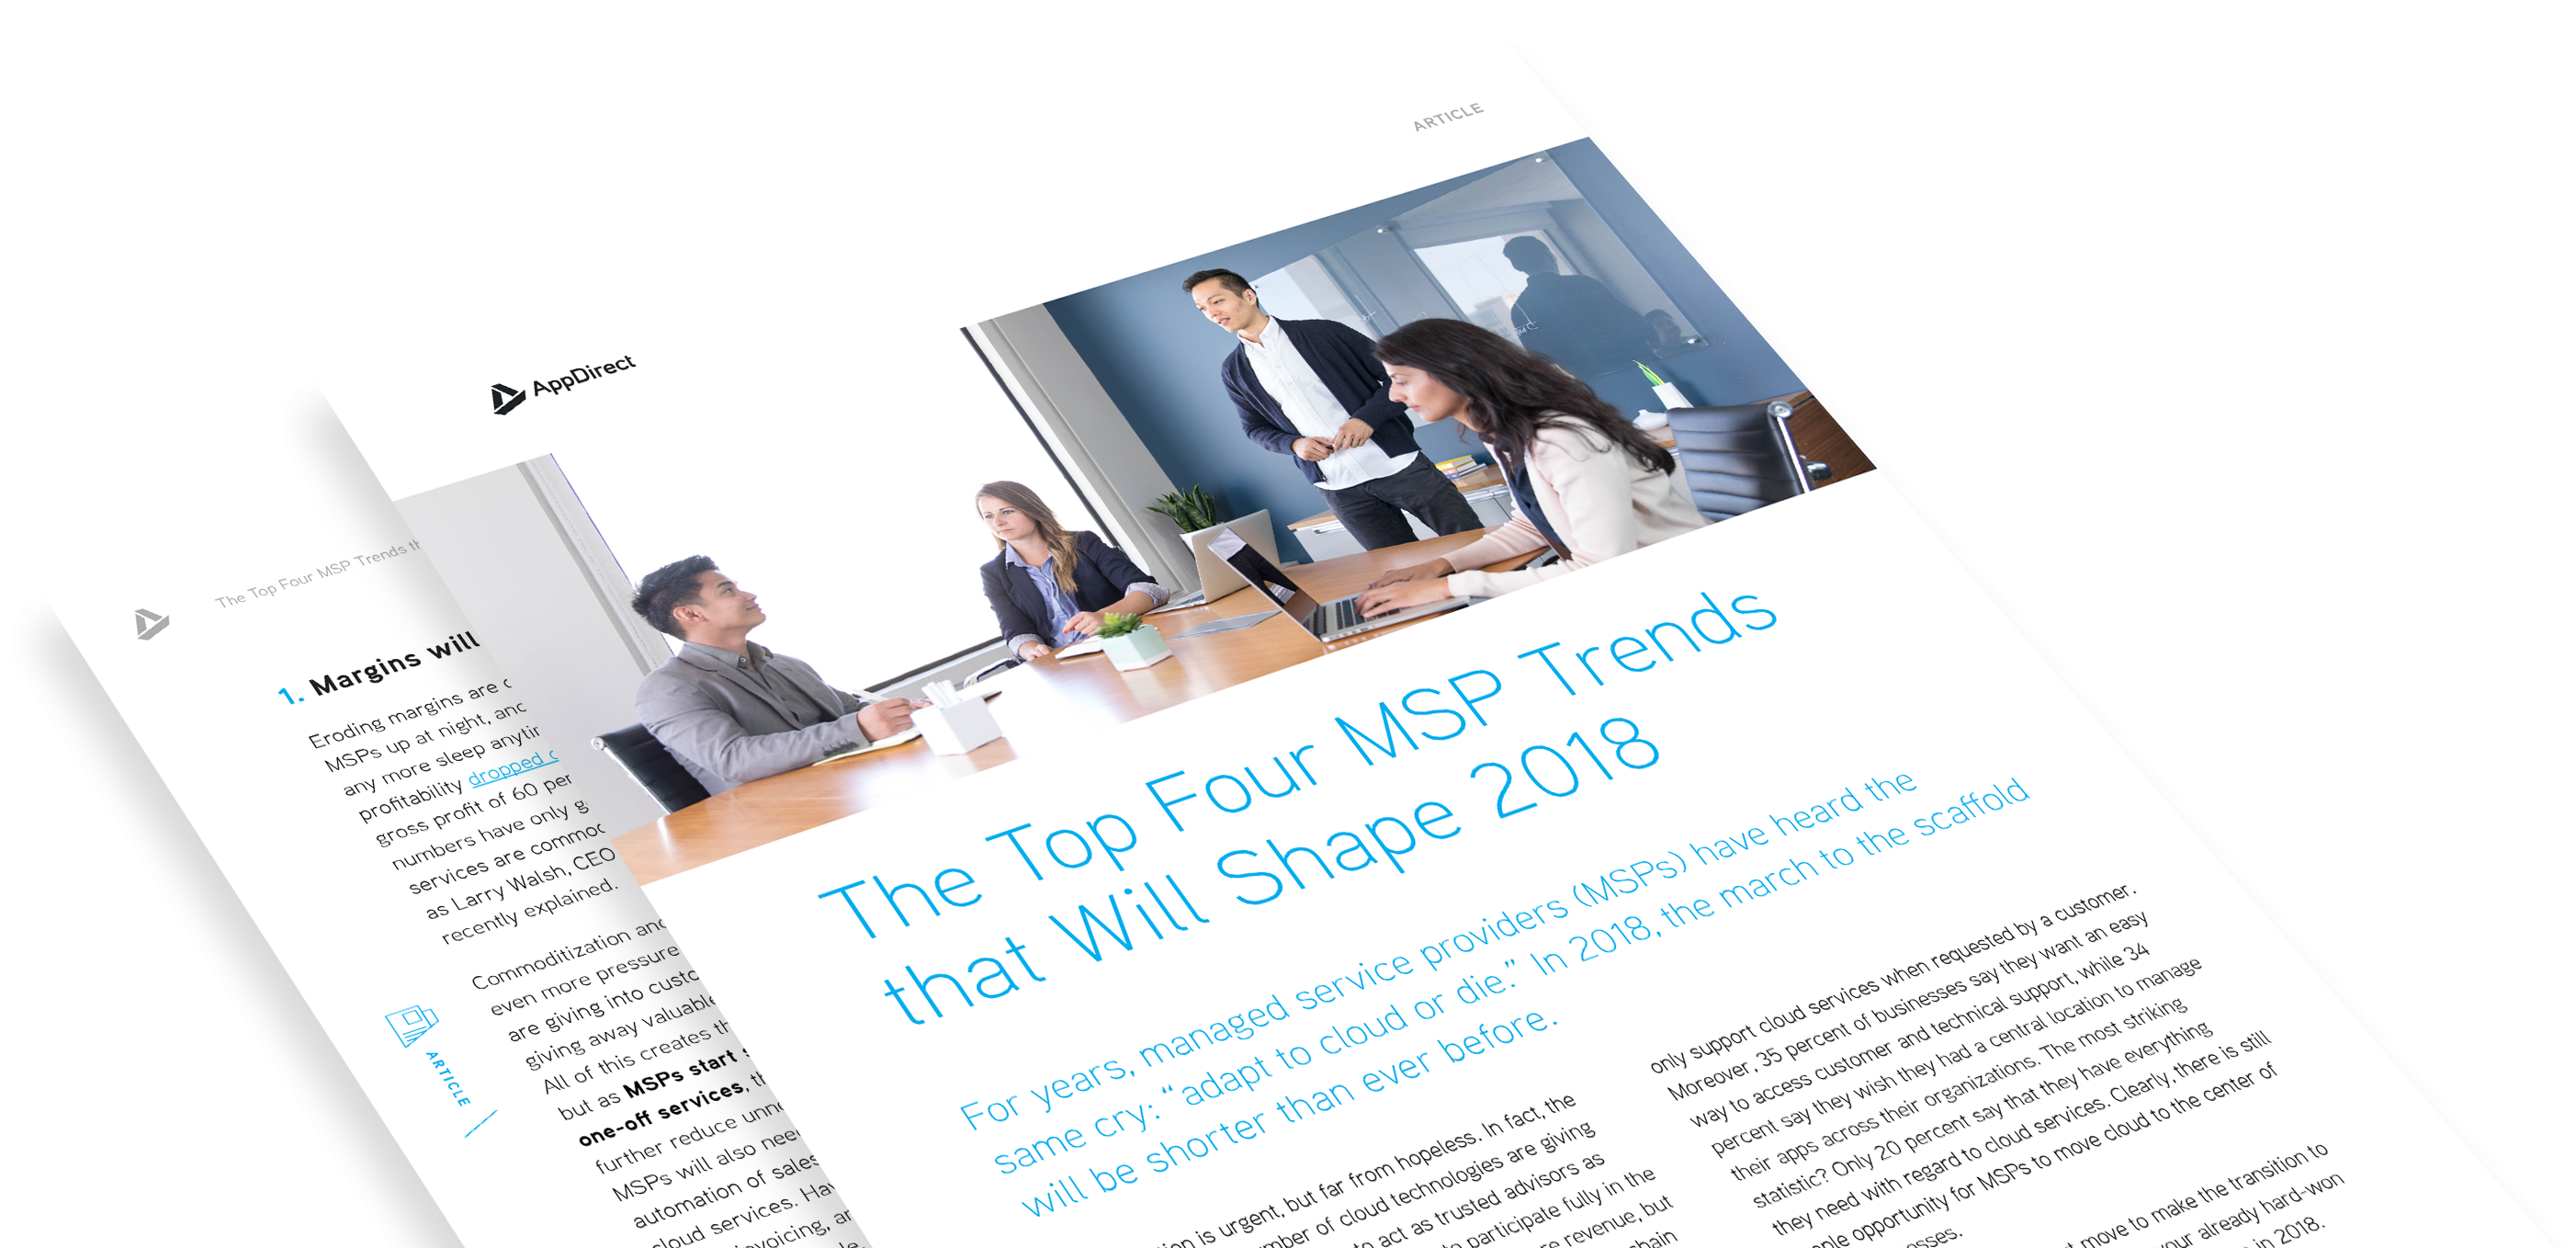 Top 4 MSP Trends for 2018